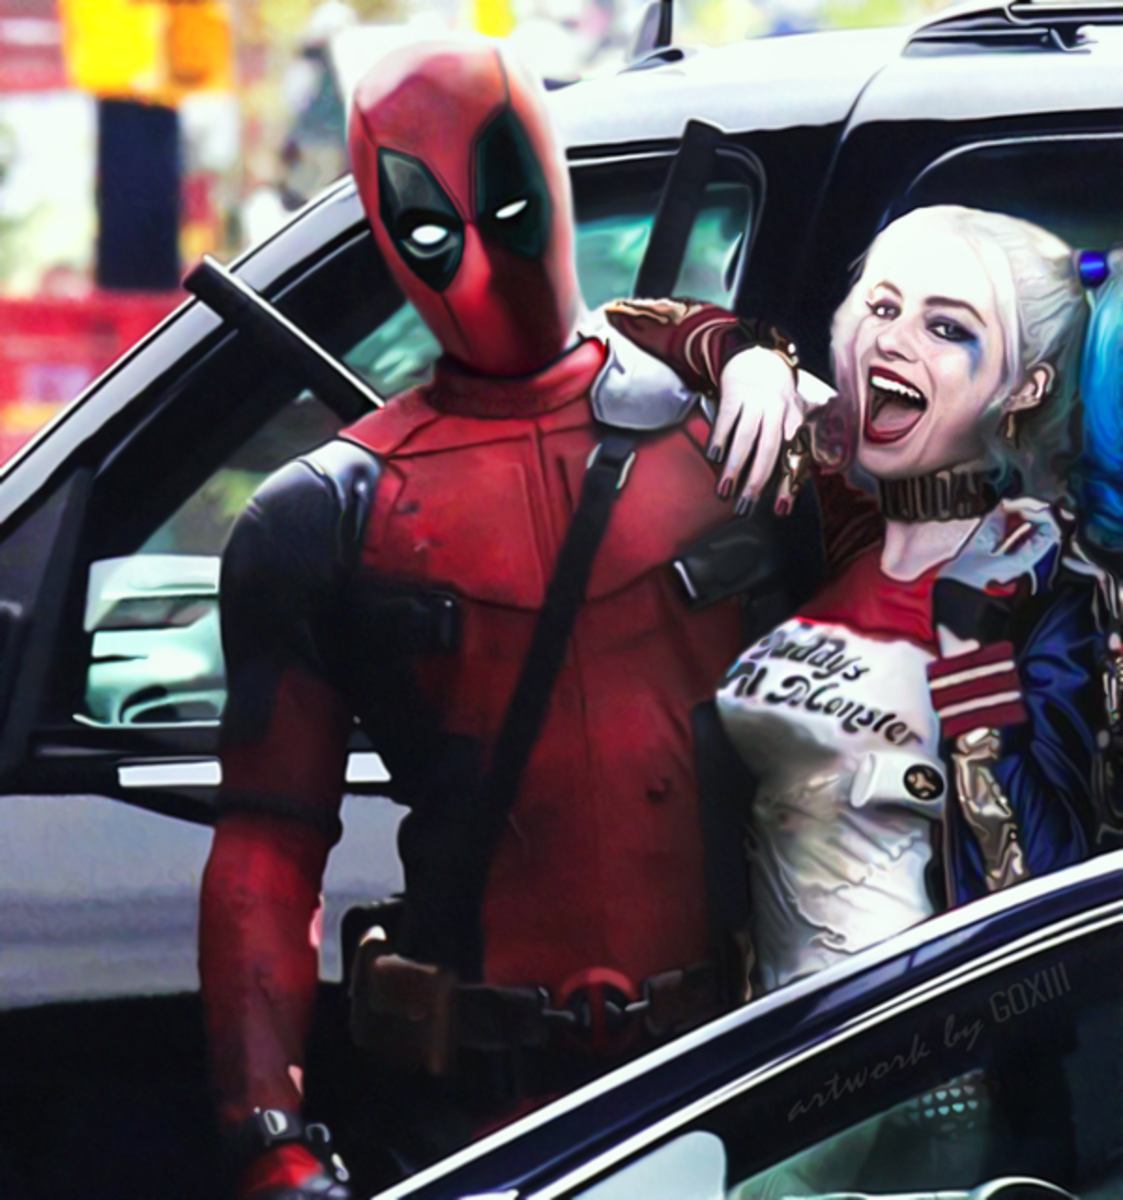 If they made their next sequel together, I wouldn't even bat an eye.